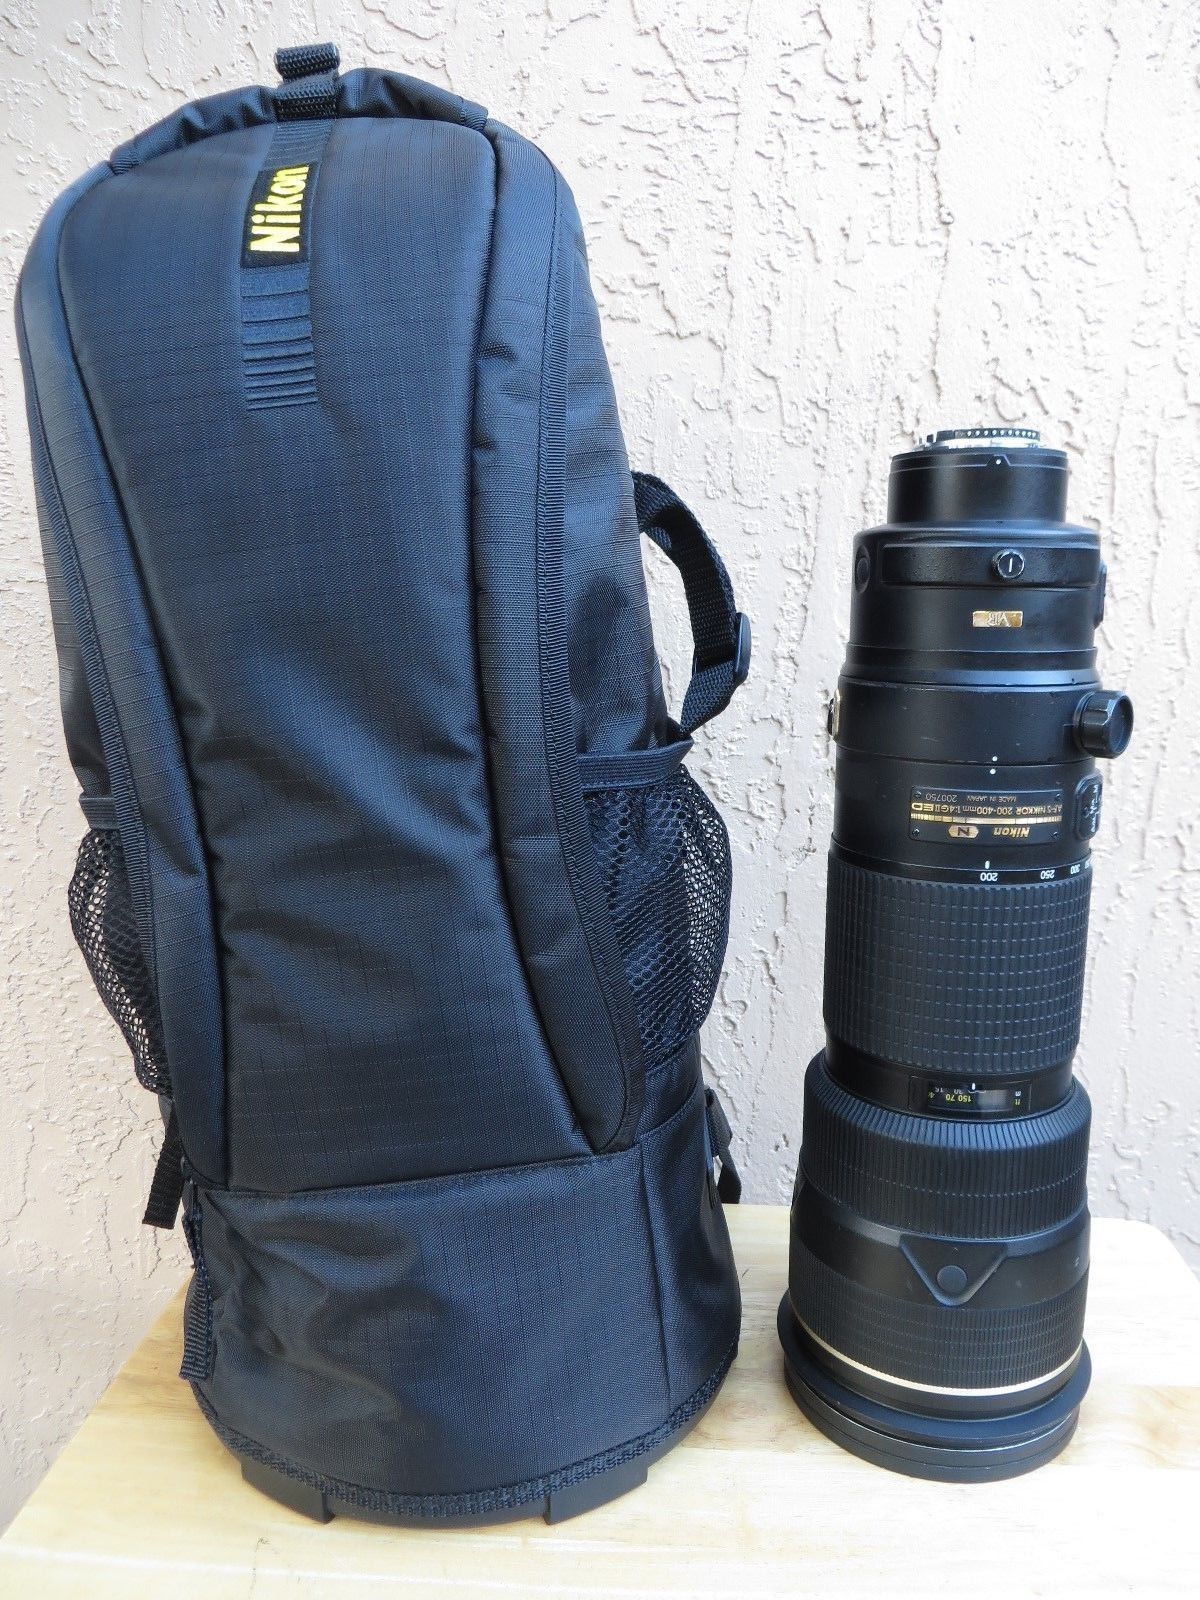 Nikon Nikkor Af S 200 400mm F4 G Ed Vr Ii N Zoom Lens Sharp No Reserve Zoom Lens Stuff To Buy Bags